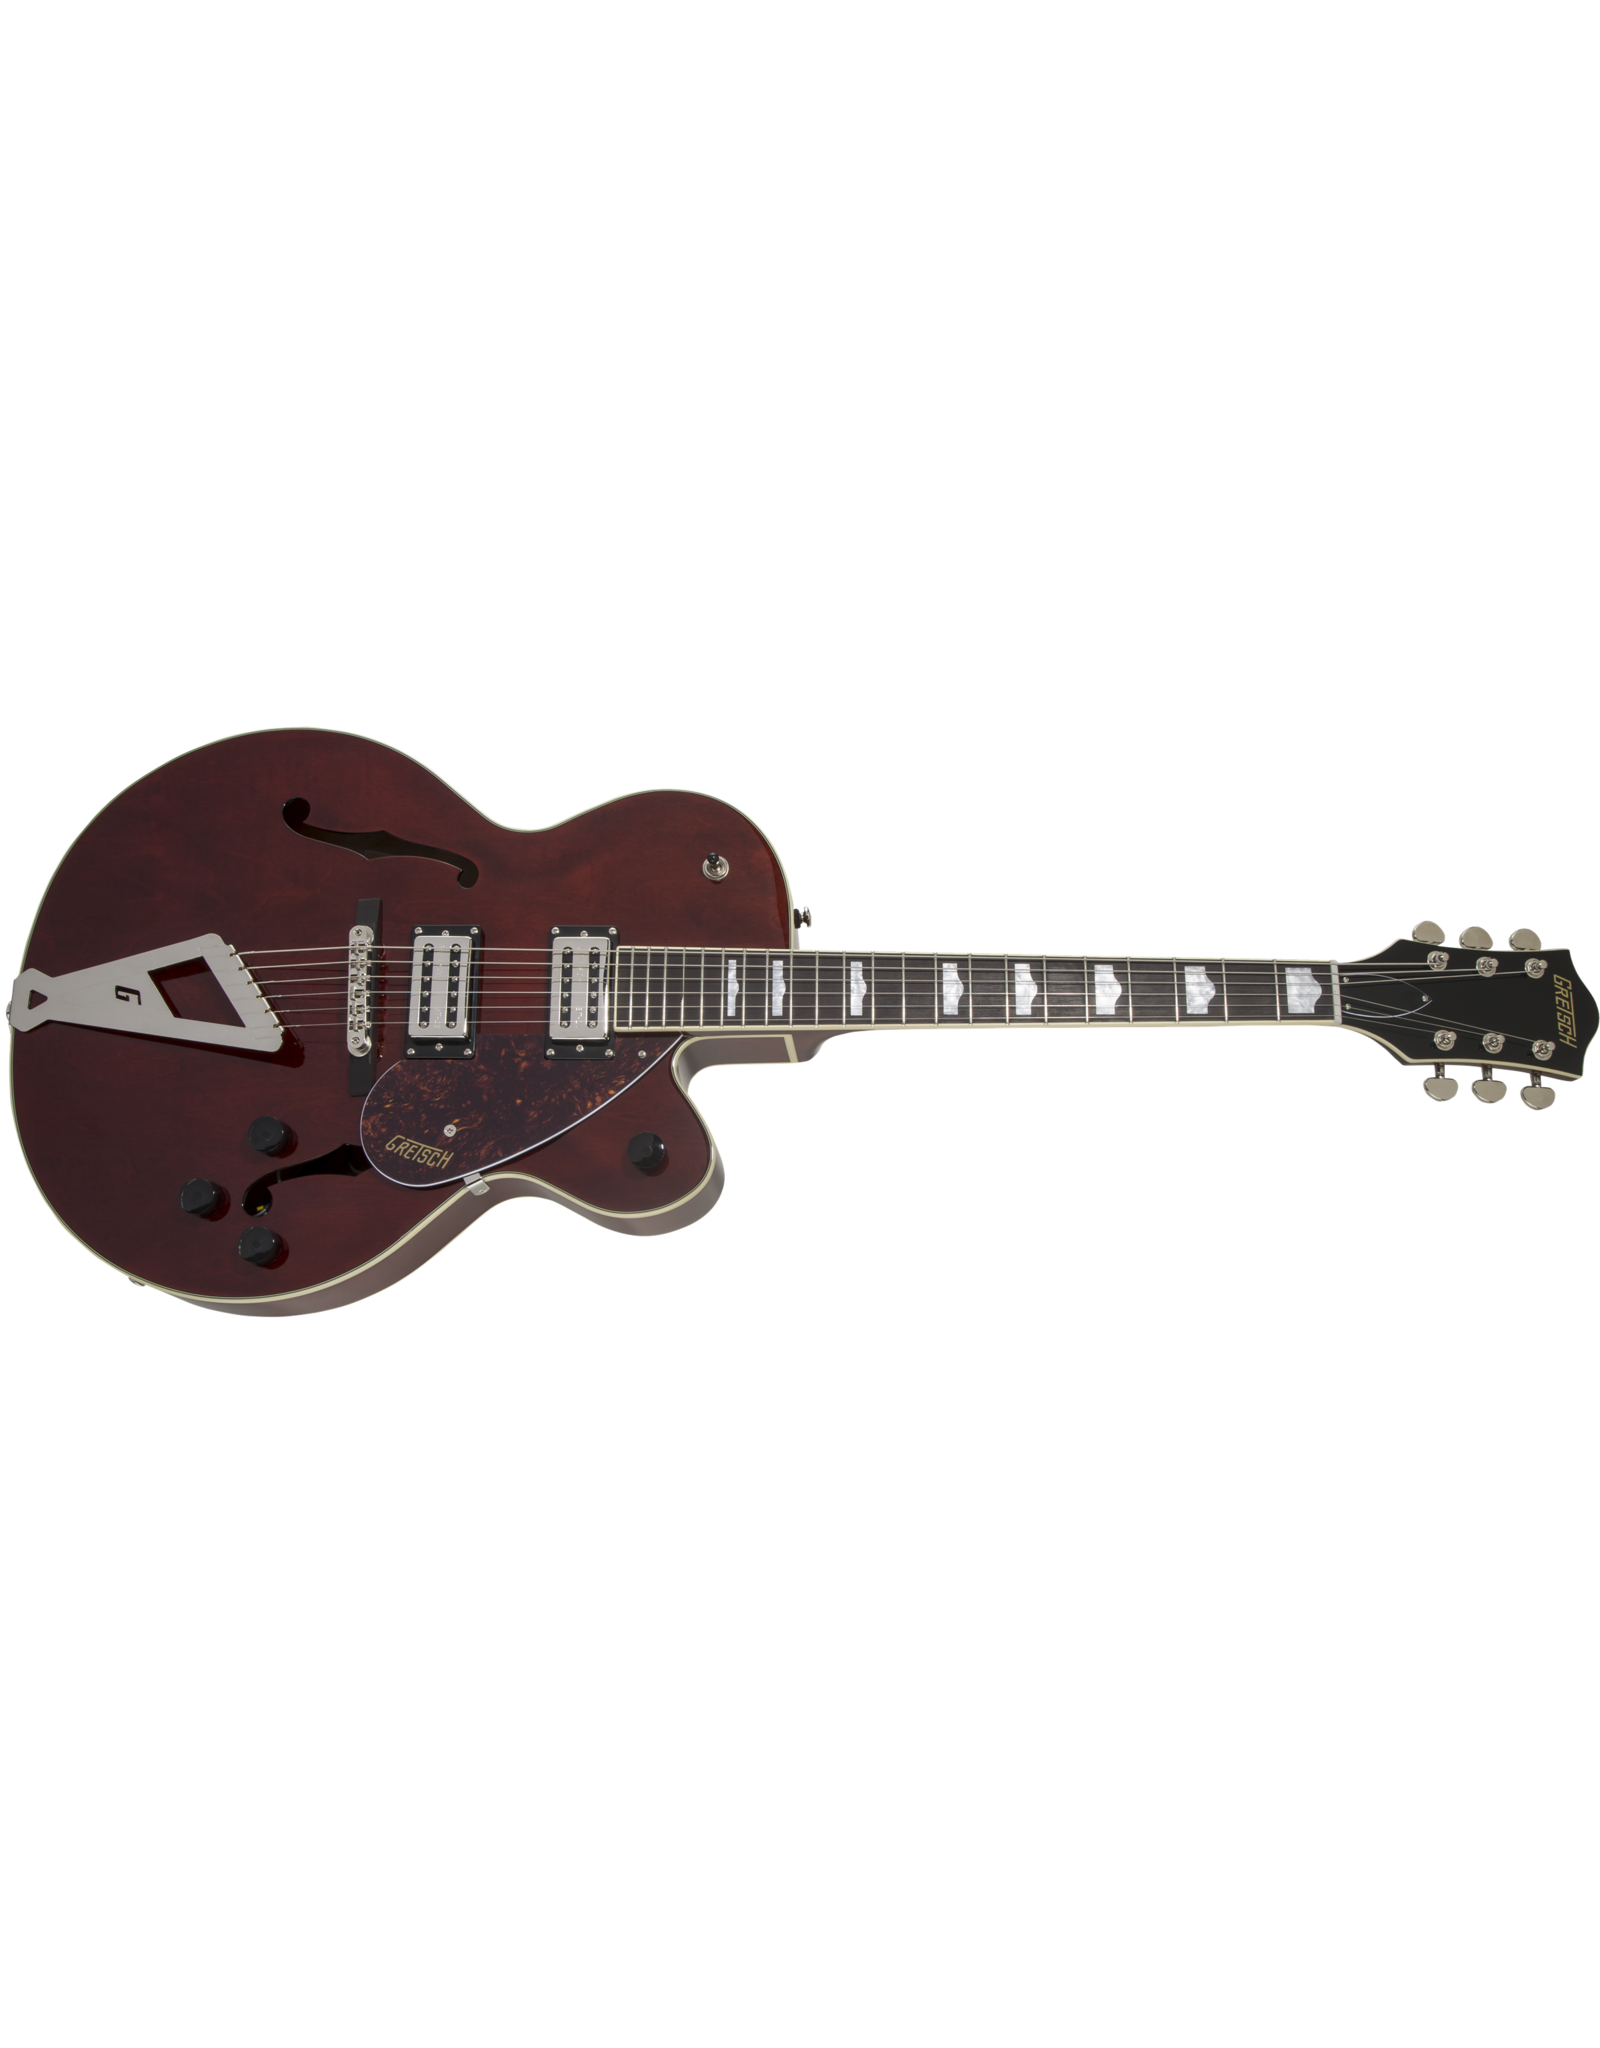 Gretsch Gretsch G2420 Streamliner Walnut